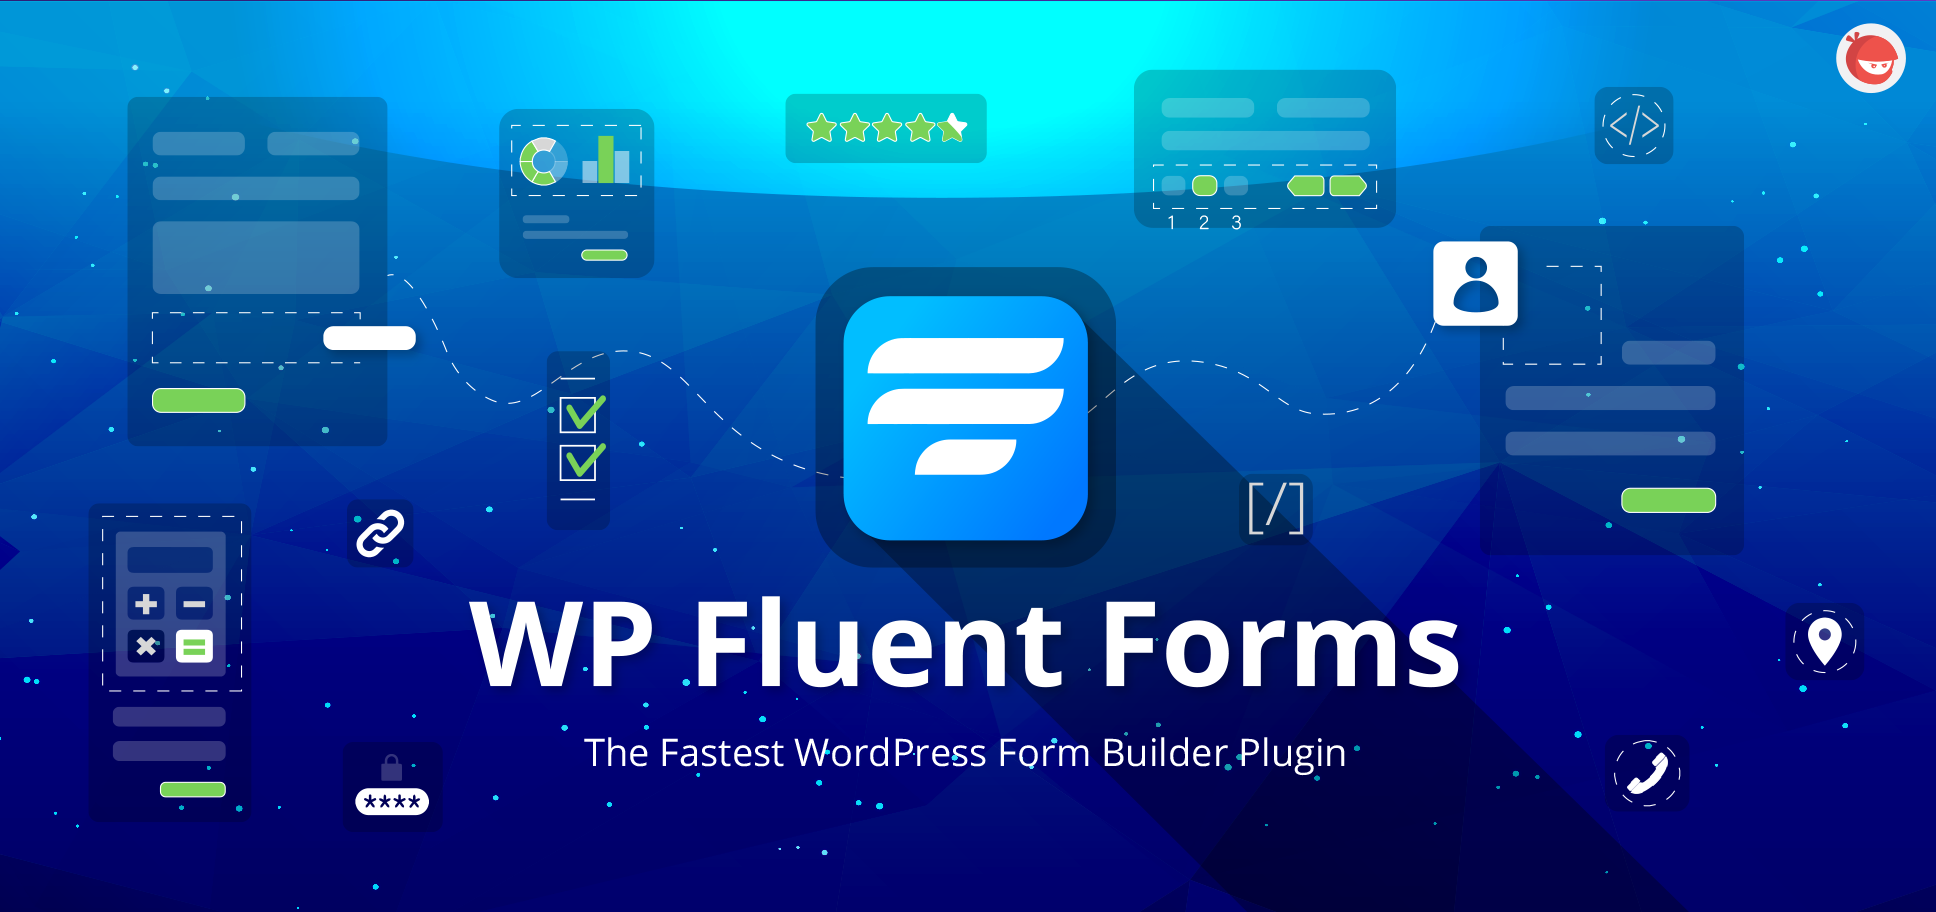 WP Fluent Forms Pro Add-On WordPress Form Plugin